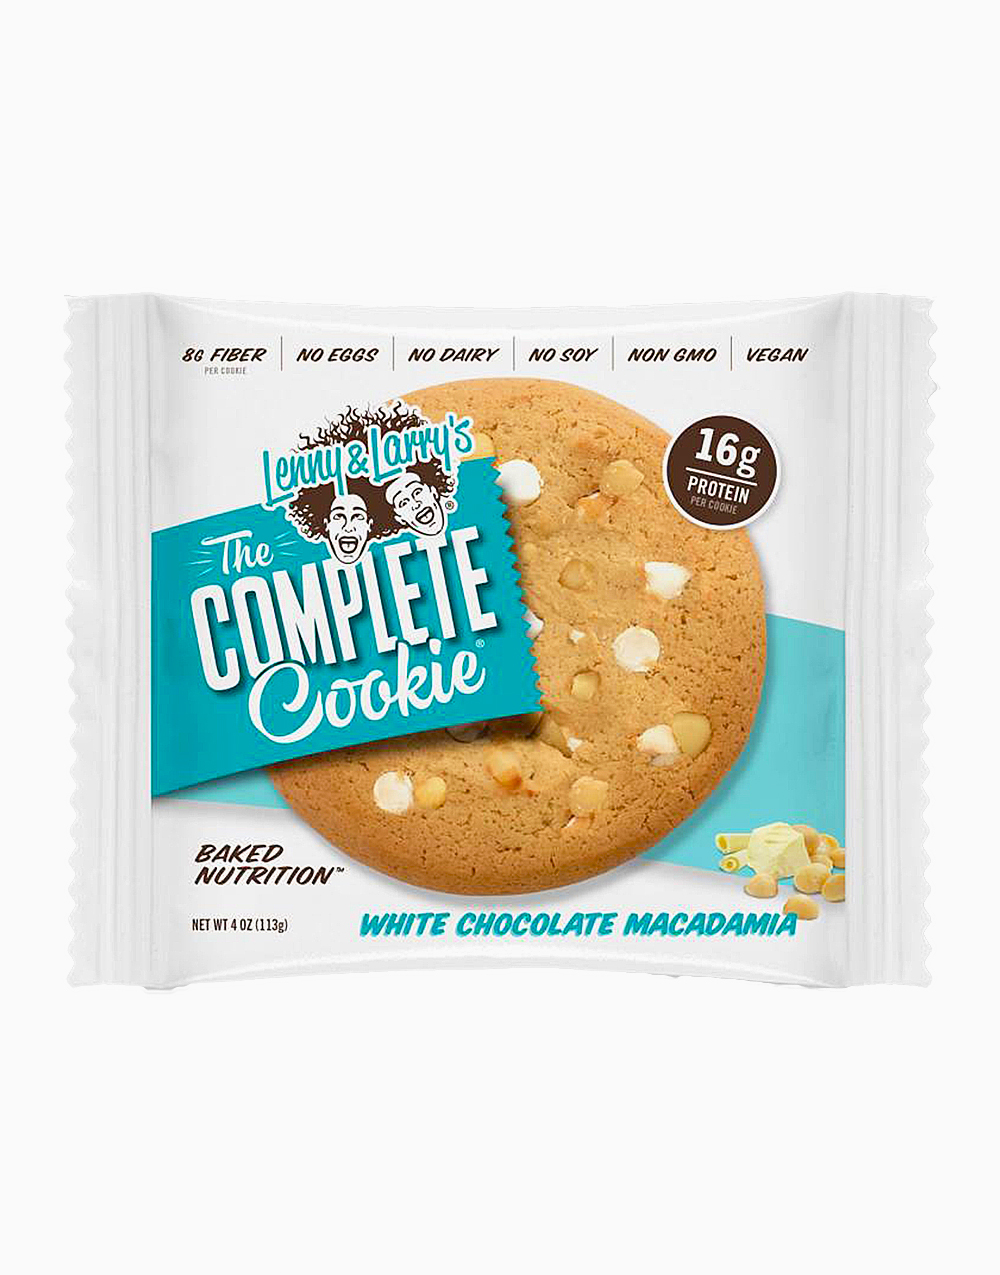 The Complete Cookie (White Chocolate Macadamia) by Lenny & Larry's